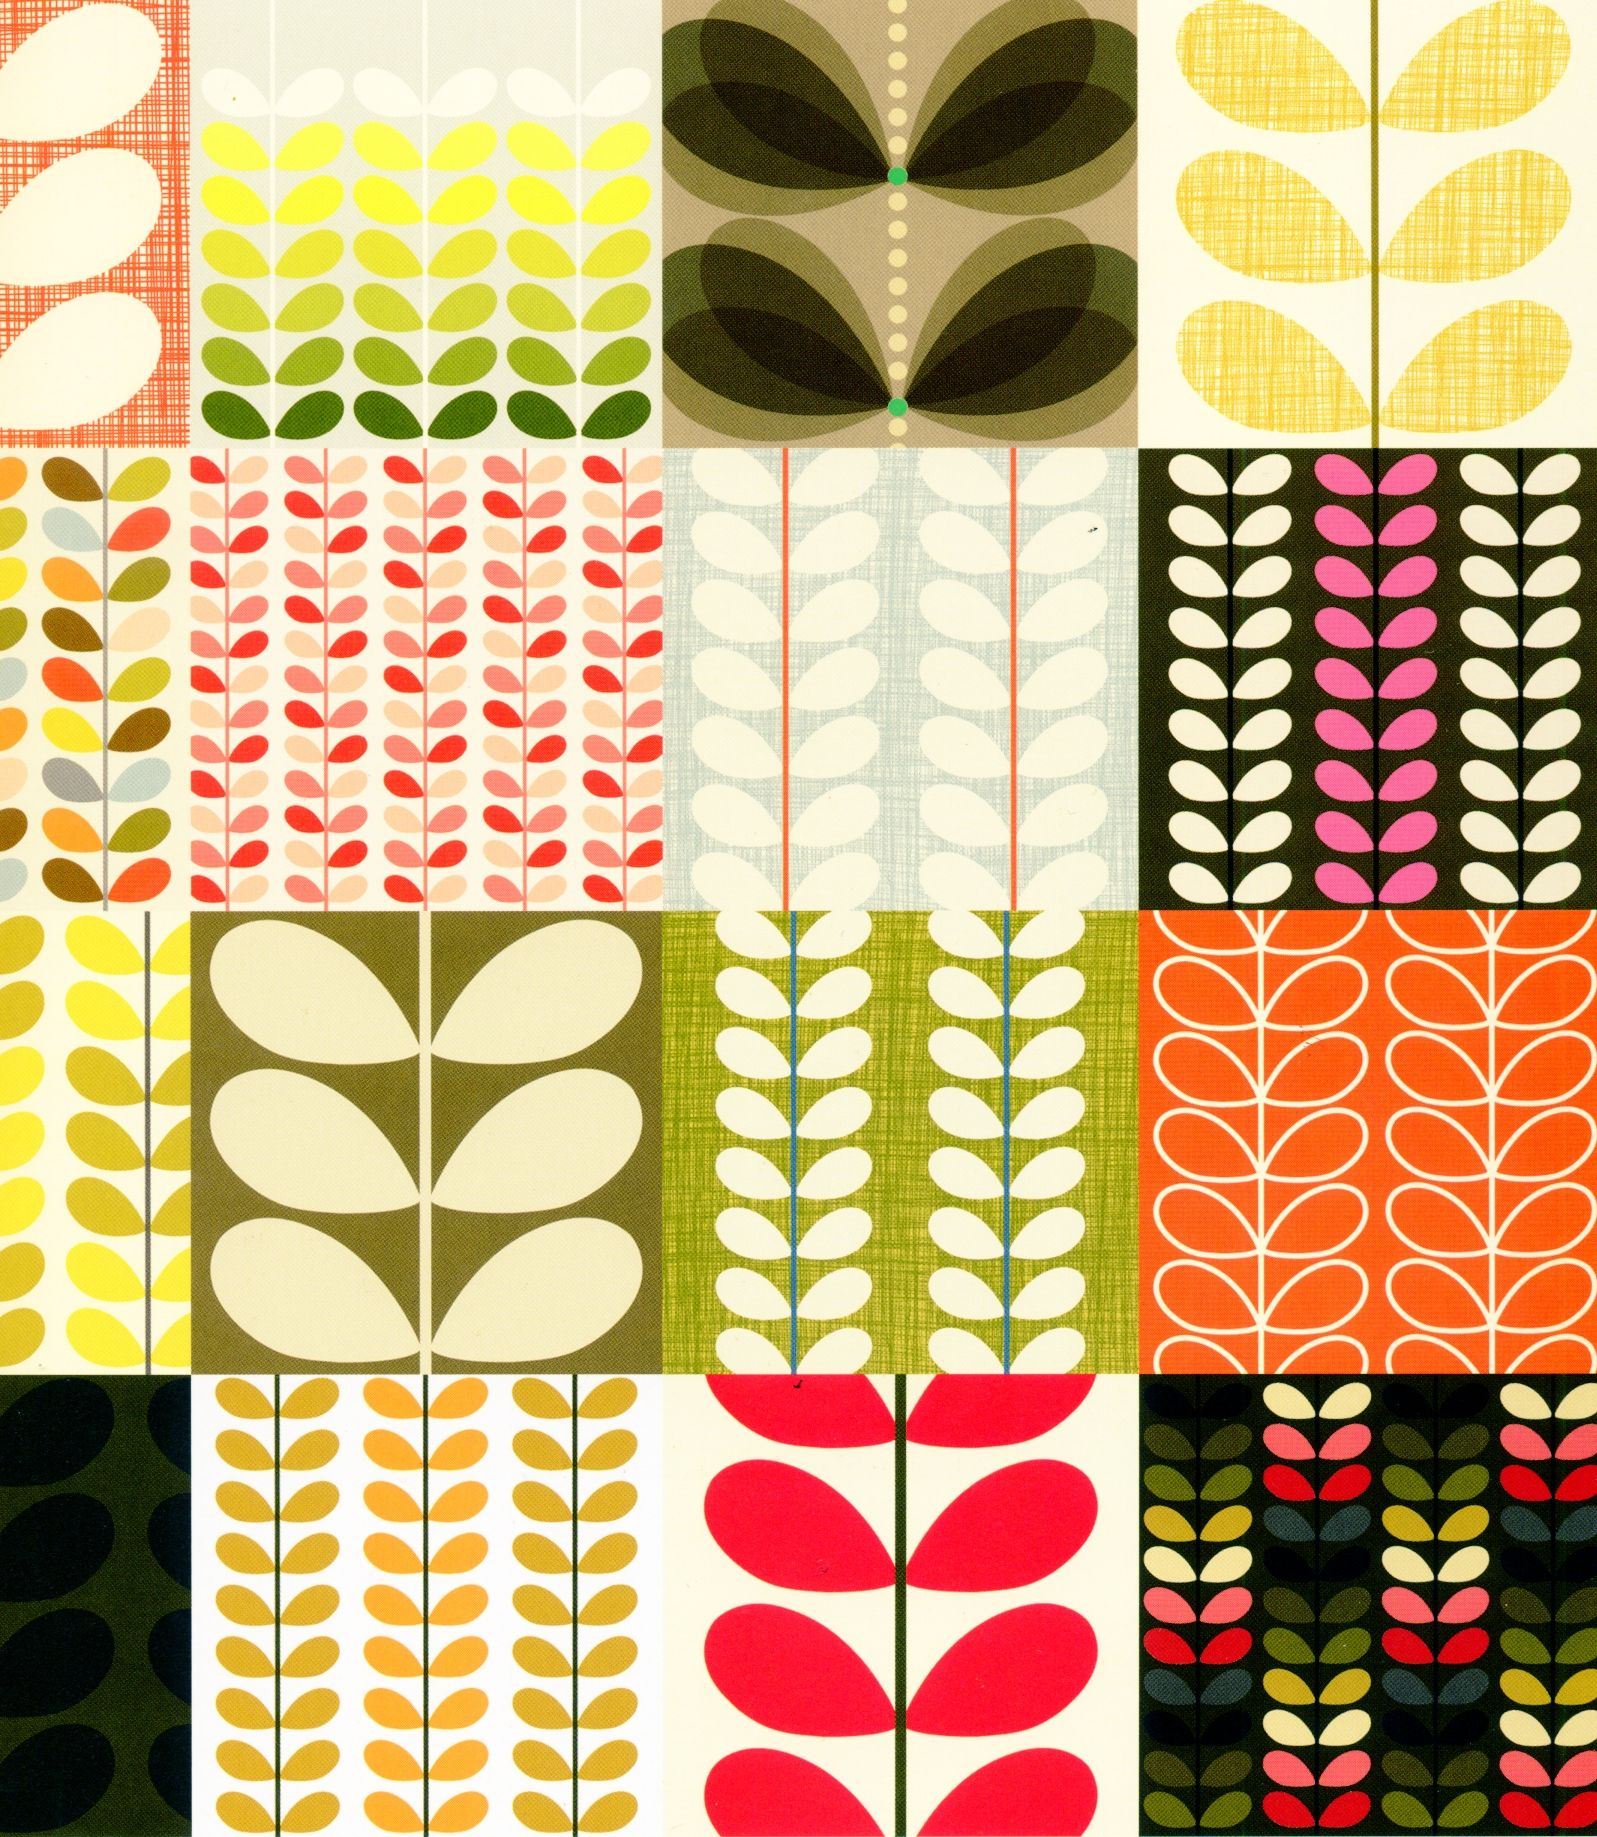 affordable from the orla kiely book patterns love the colour choices for the bottom right with. Black Bedroom Furniture Sets. Home Design Ideas